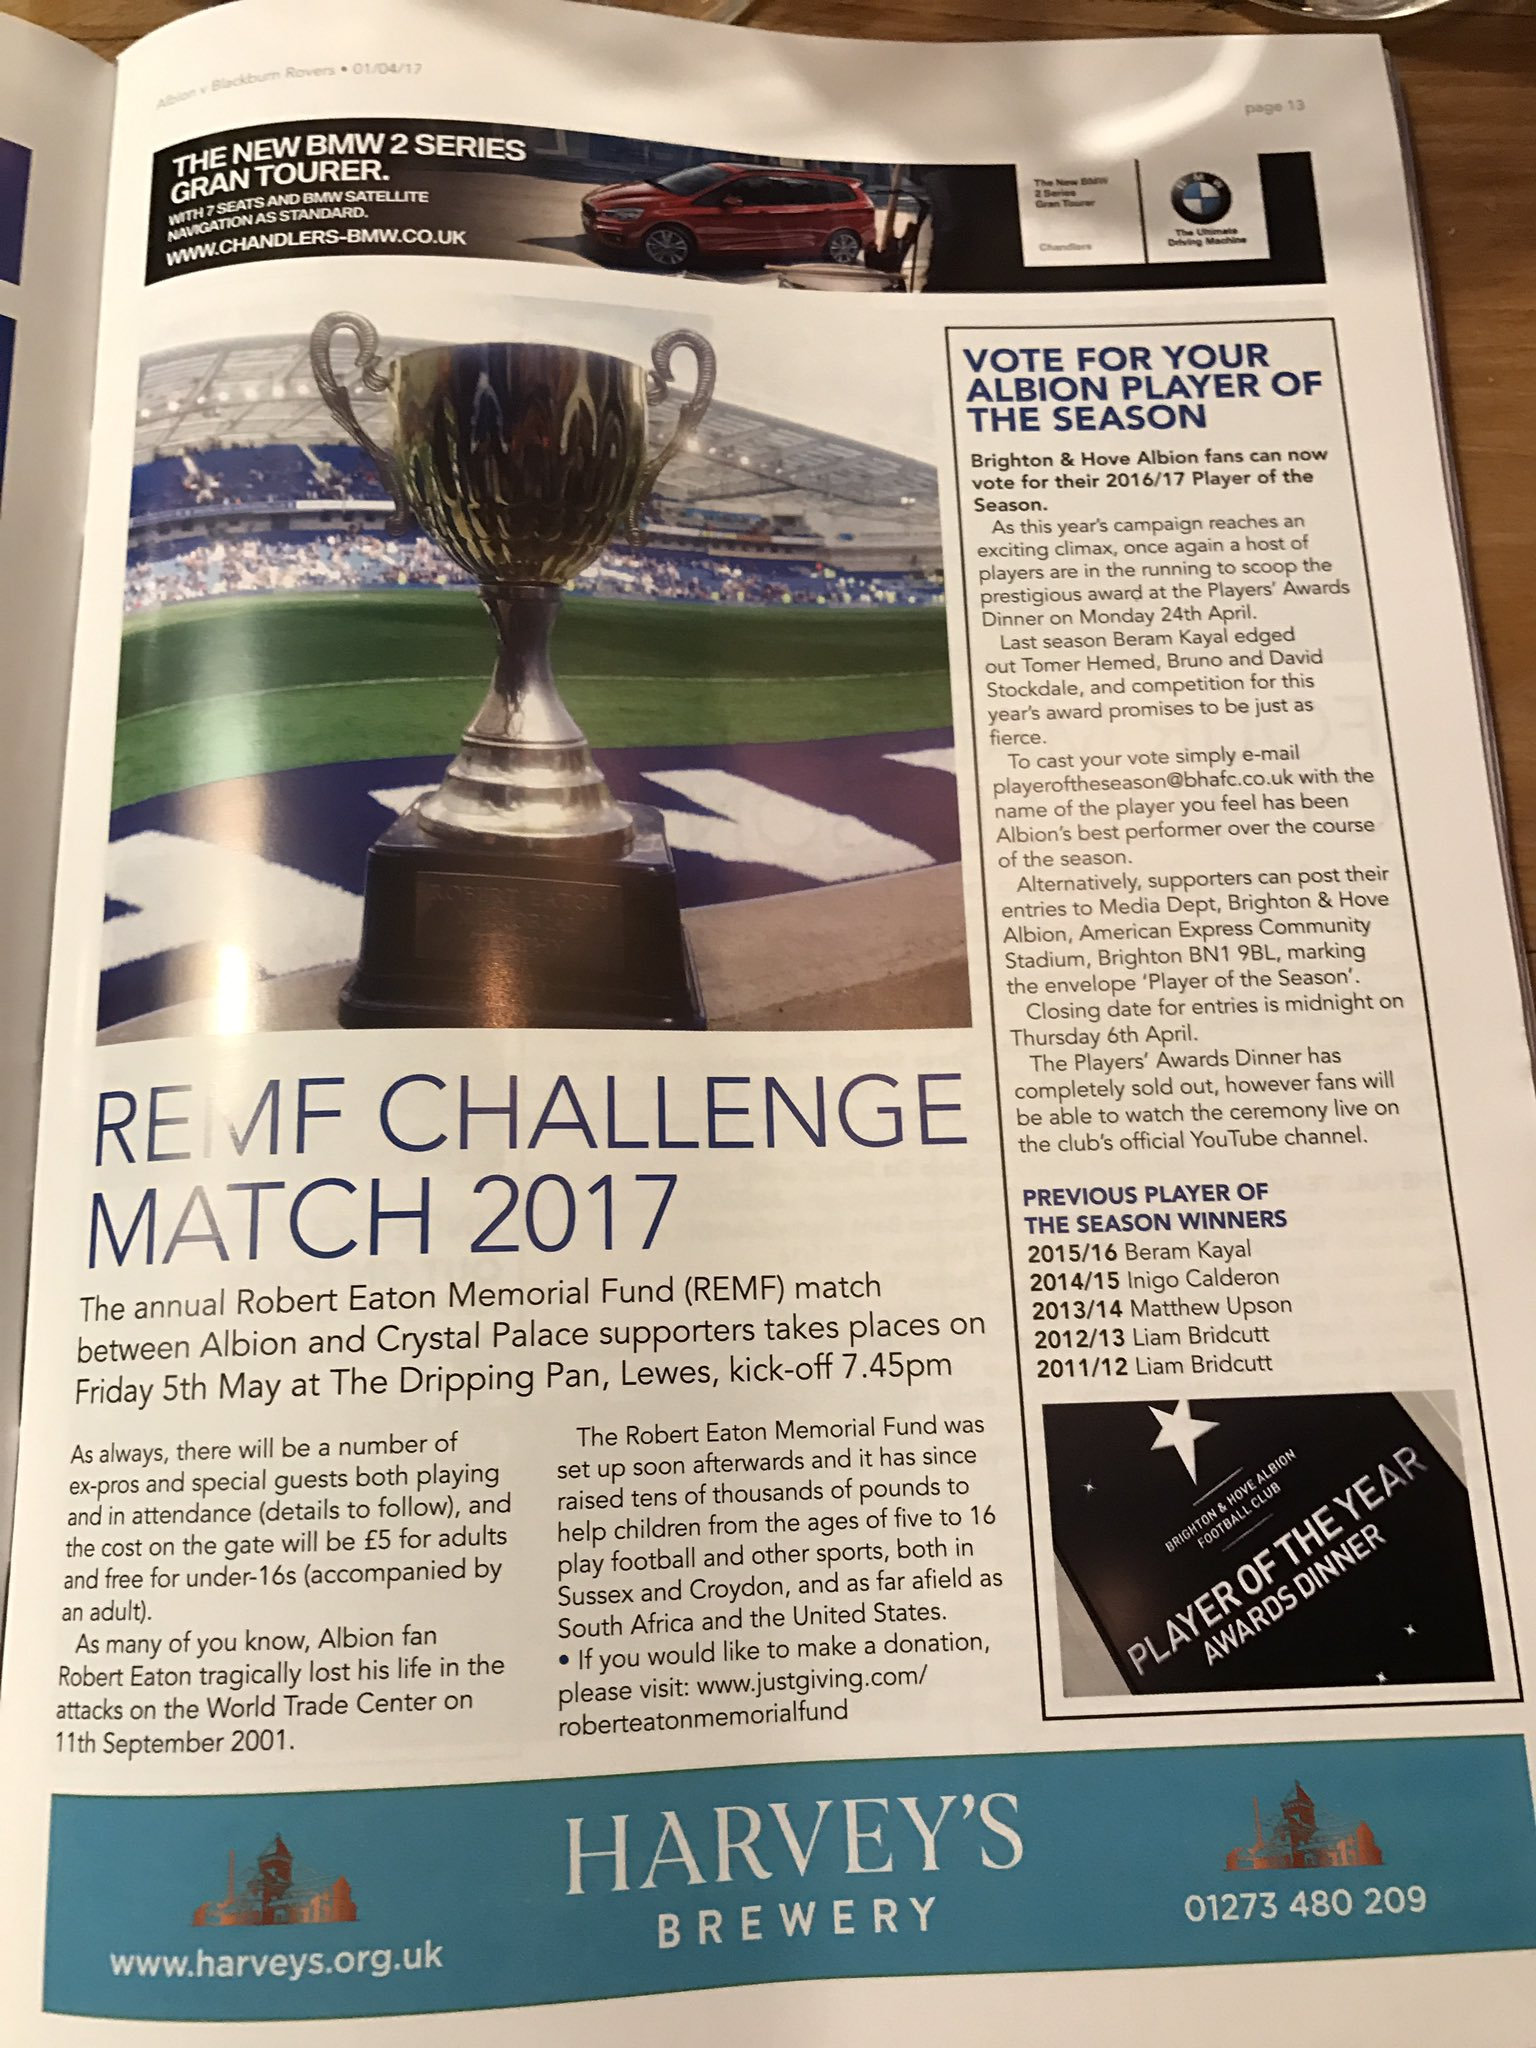 The Remf On Twitter Thanks Officialbhafc For The Plug About The